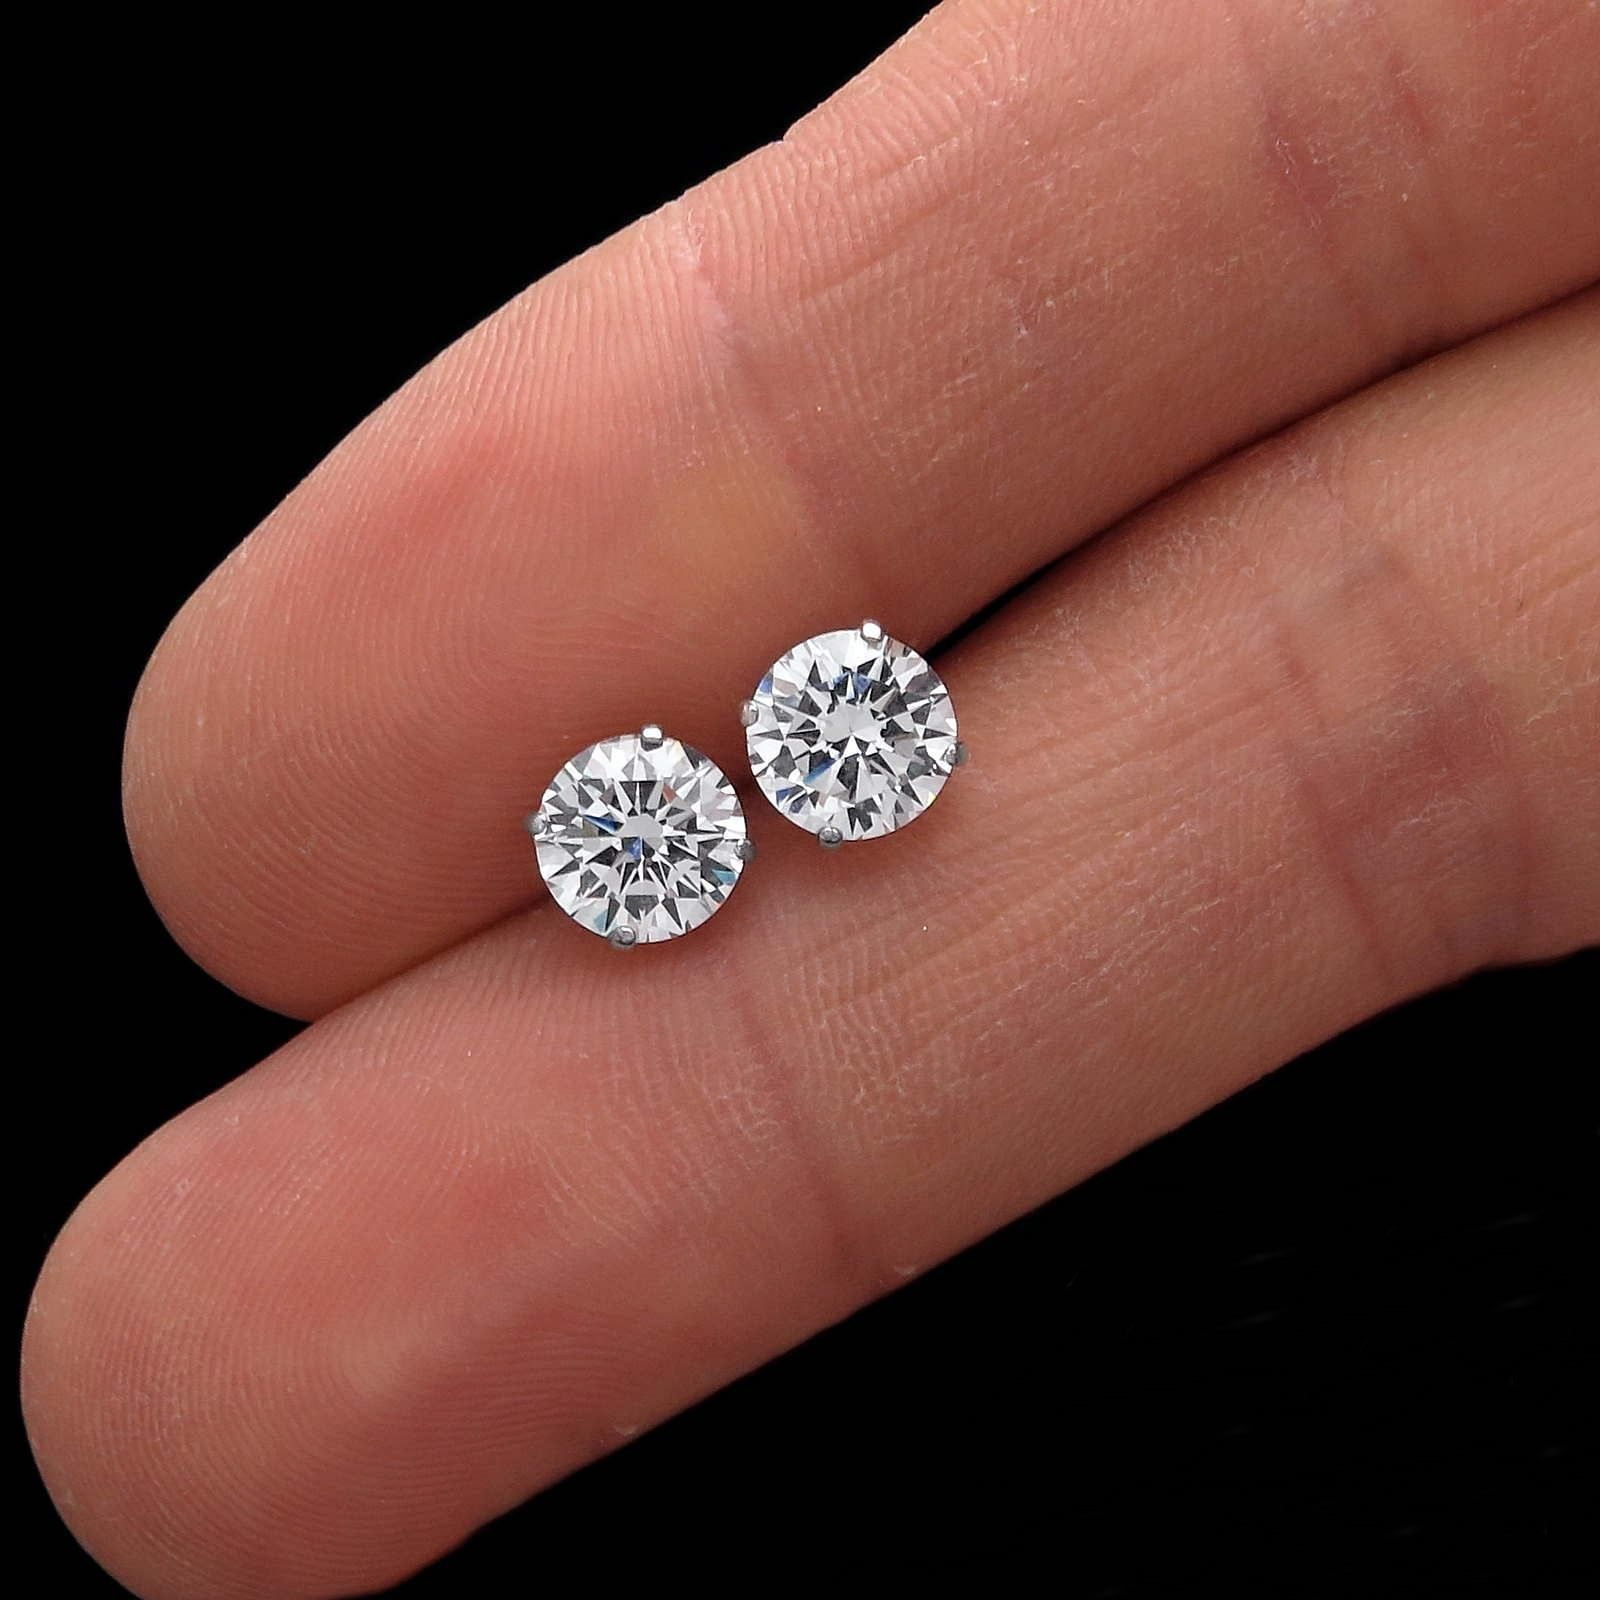 6686c785b 35.99 | 2Ct Brilliant Created Diamond Earrings 14K Real White Gold Round  Solitaire Studs ❤ #brilliant #created #diamond #earrings #real #white #gold  #round ...